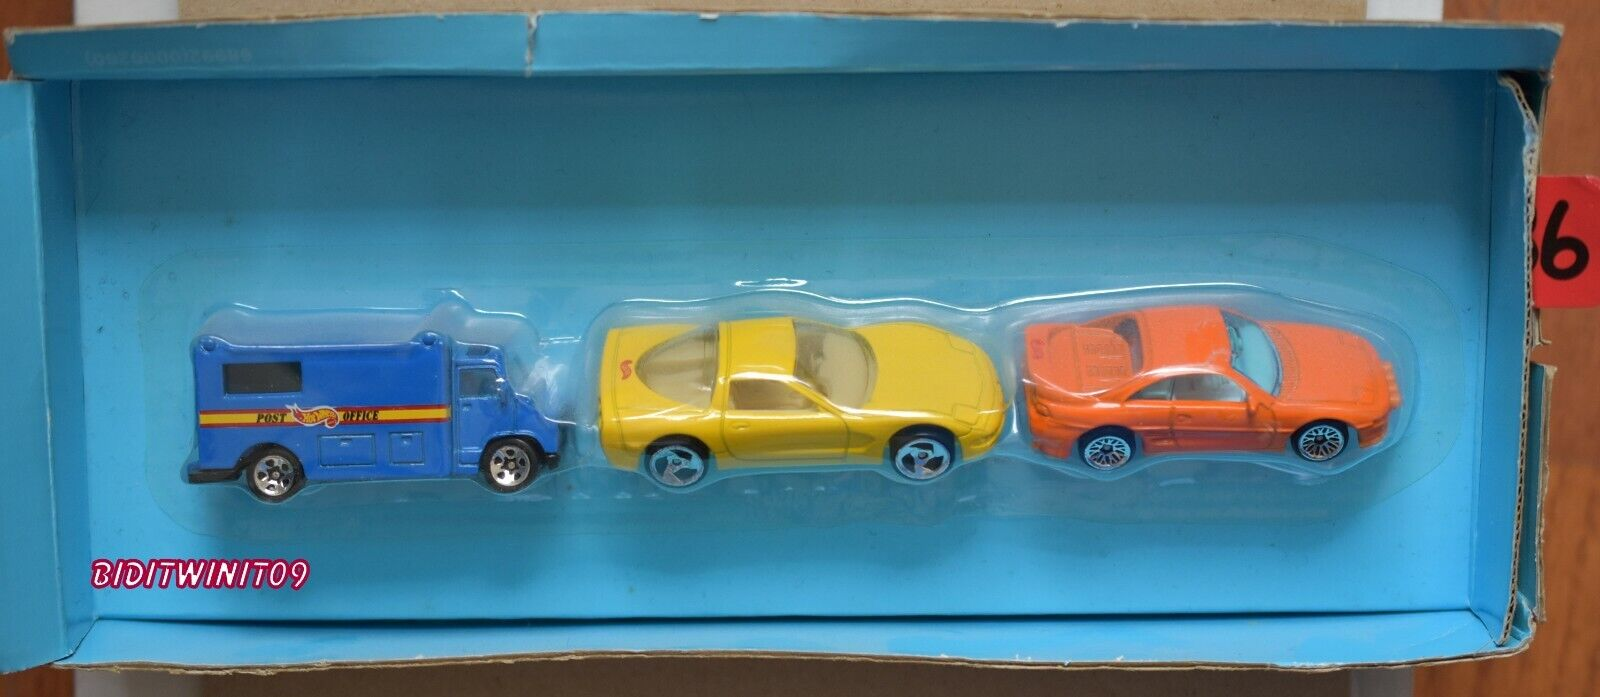 Hot Wheels 3 Car Confezione Corvette Toyota Mr2 Ufficio Postale Camion W+